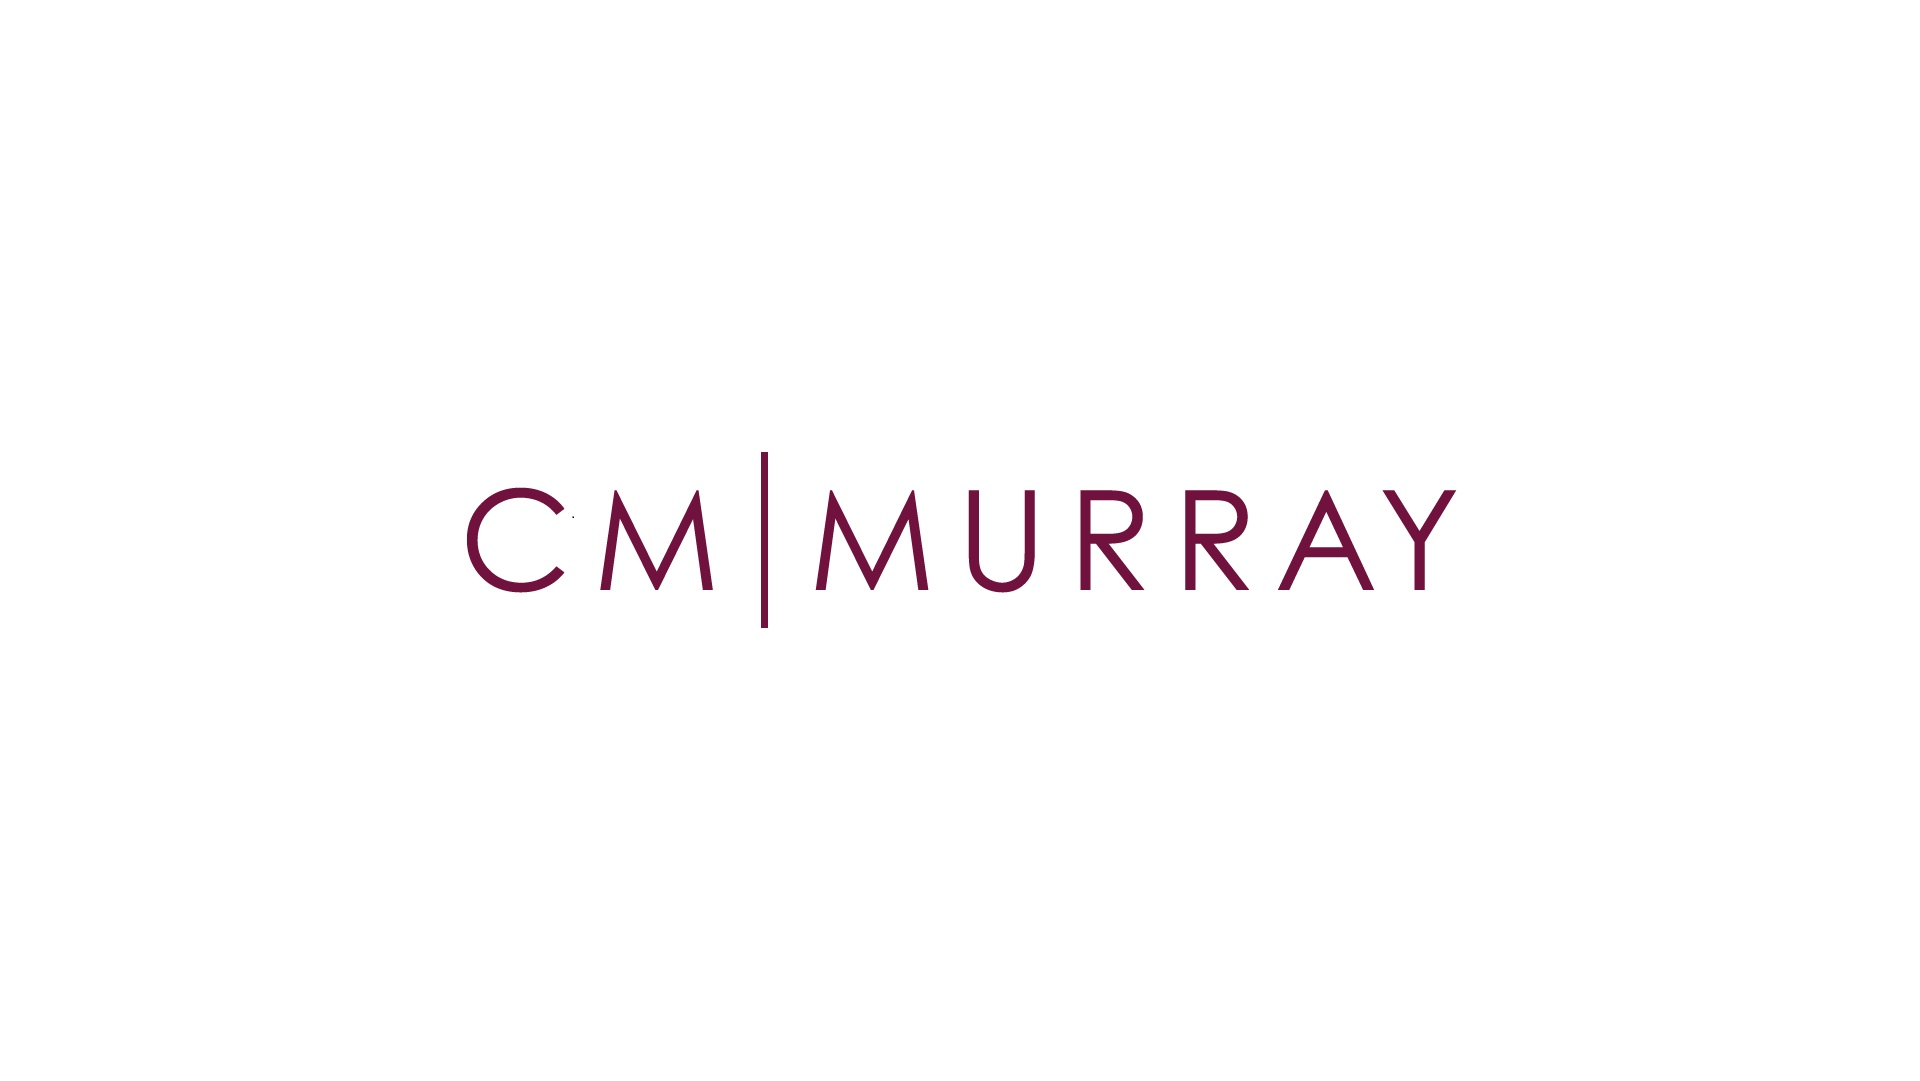 CM Murray LLP logo - employment and partnership solicitors London